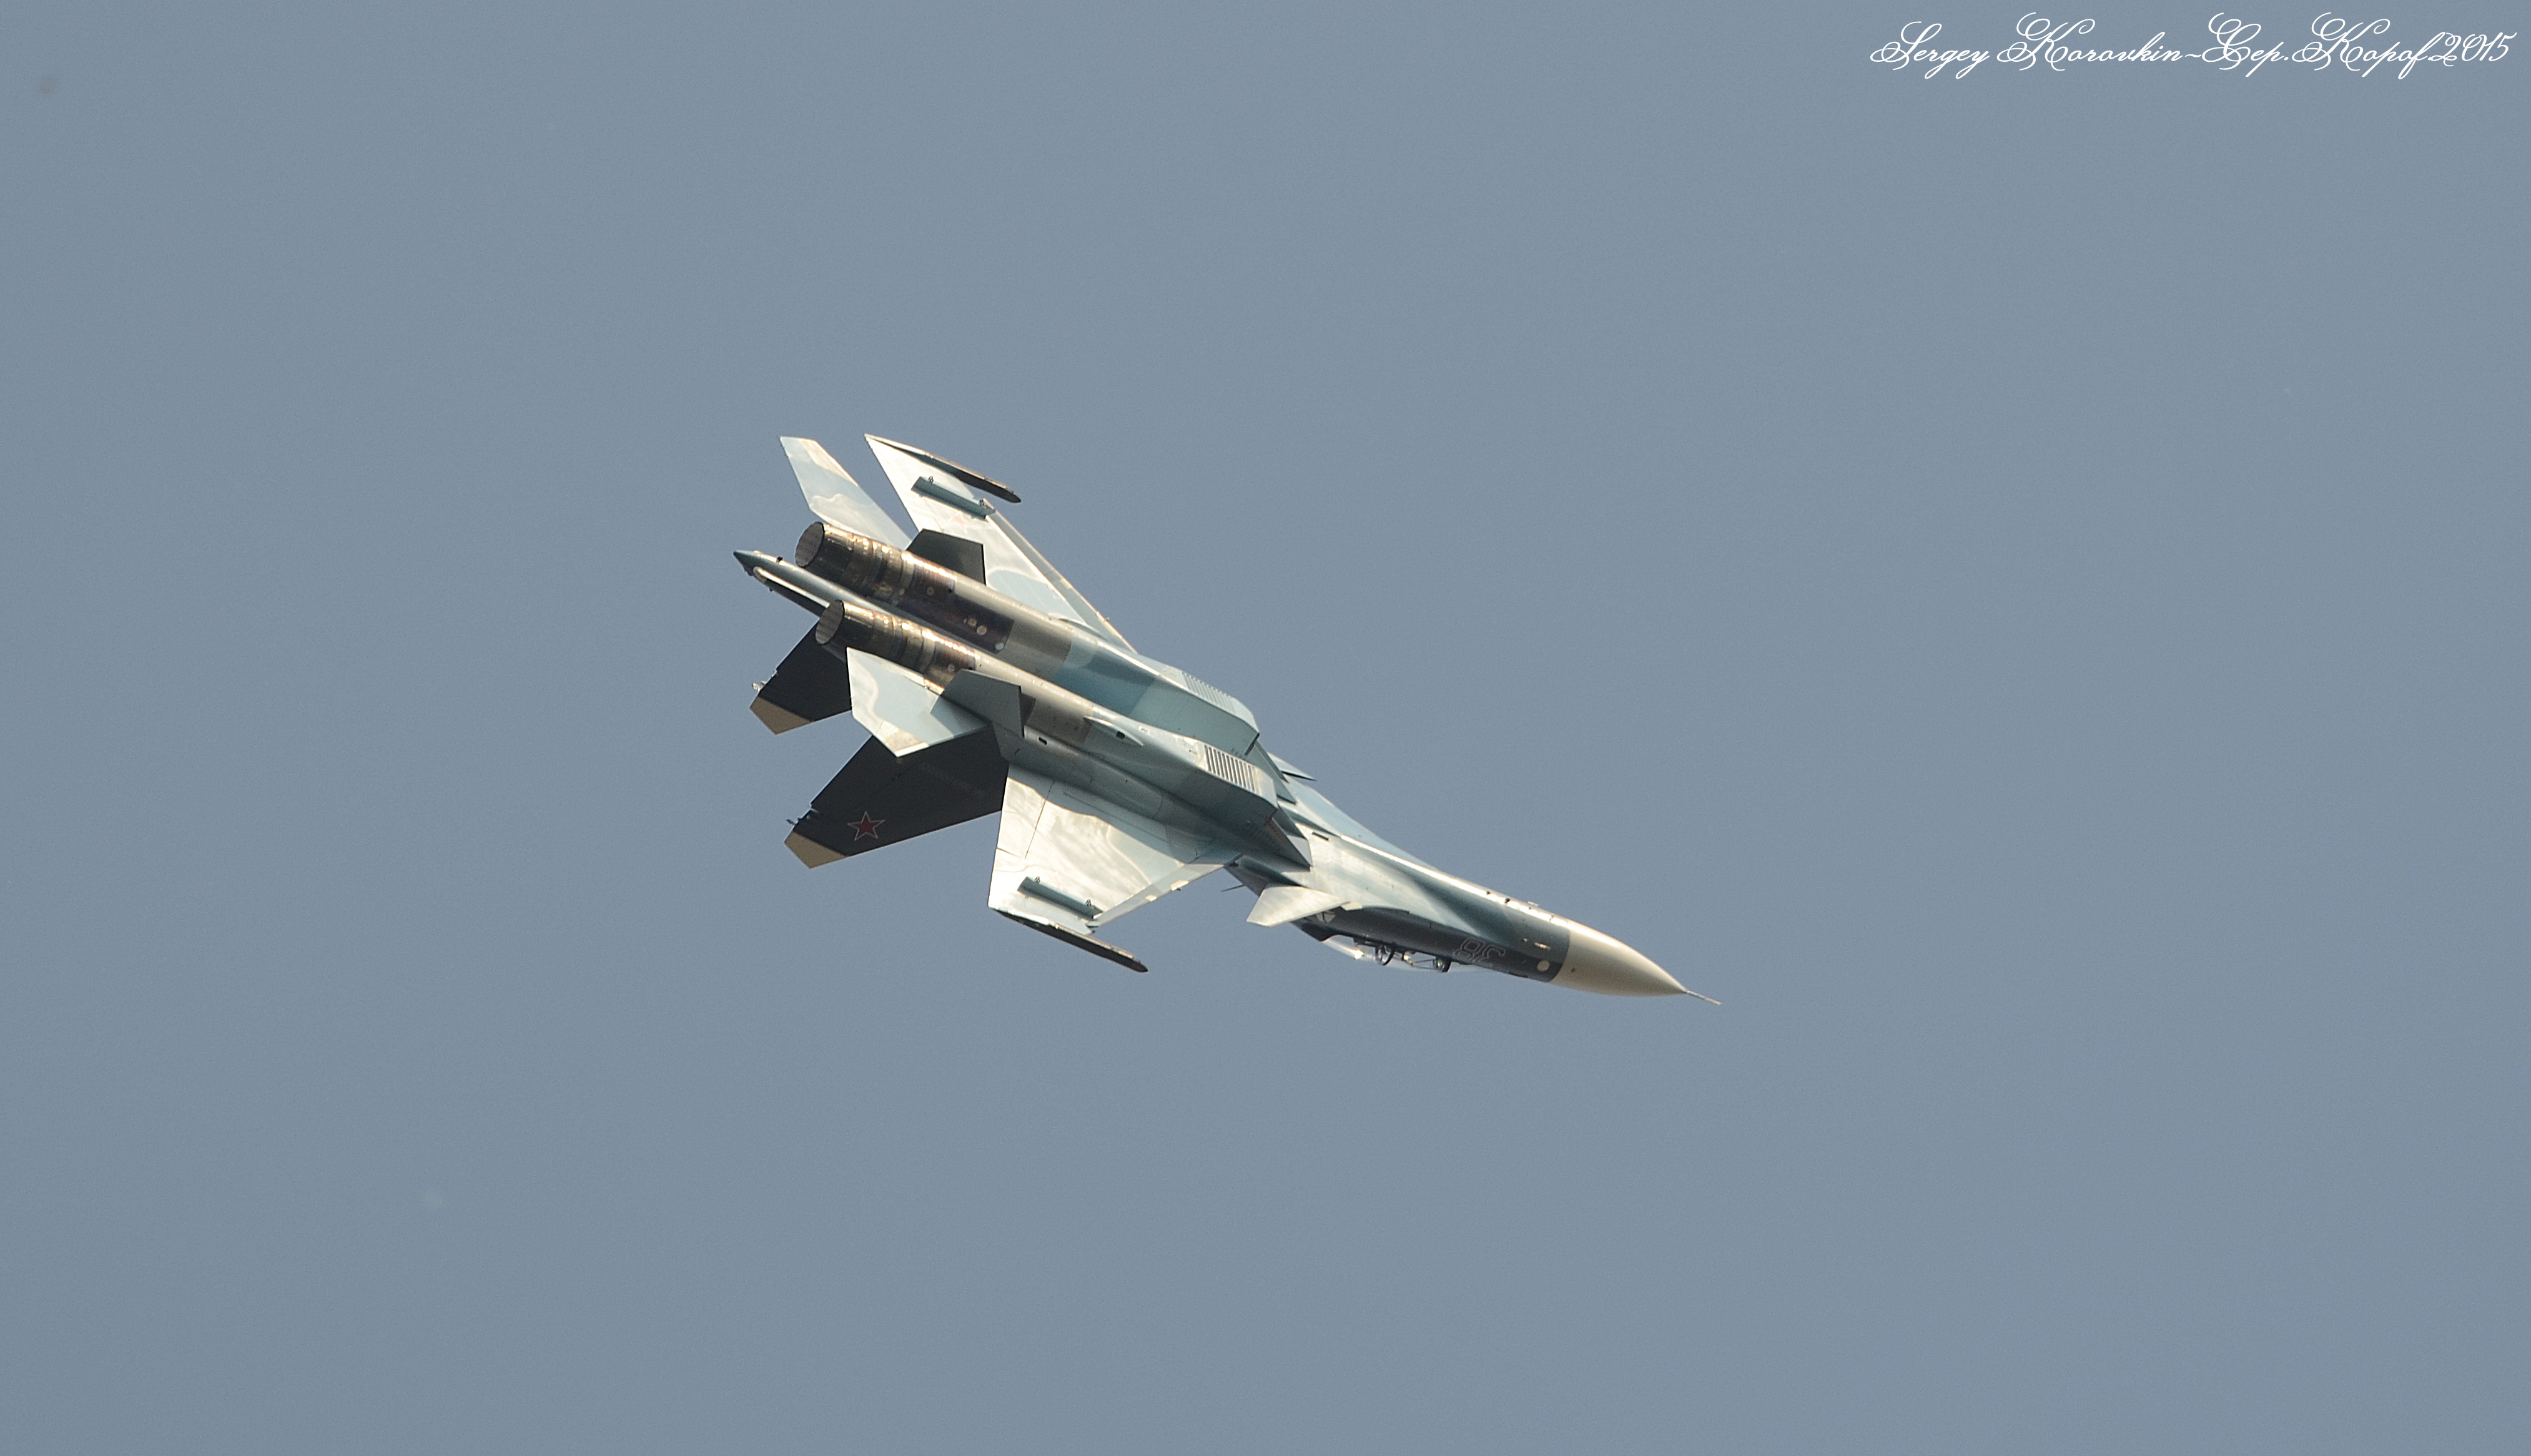 MAKS-2015 Air Show: Photos and Discussion - Page 2 0_17b4b3_cb3ddb63_orig